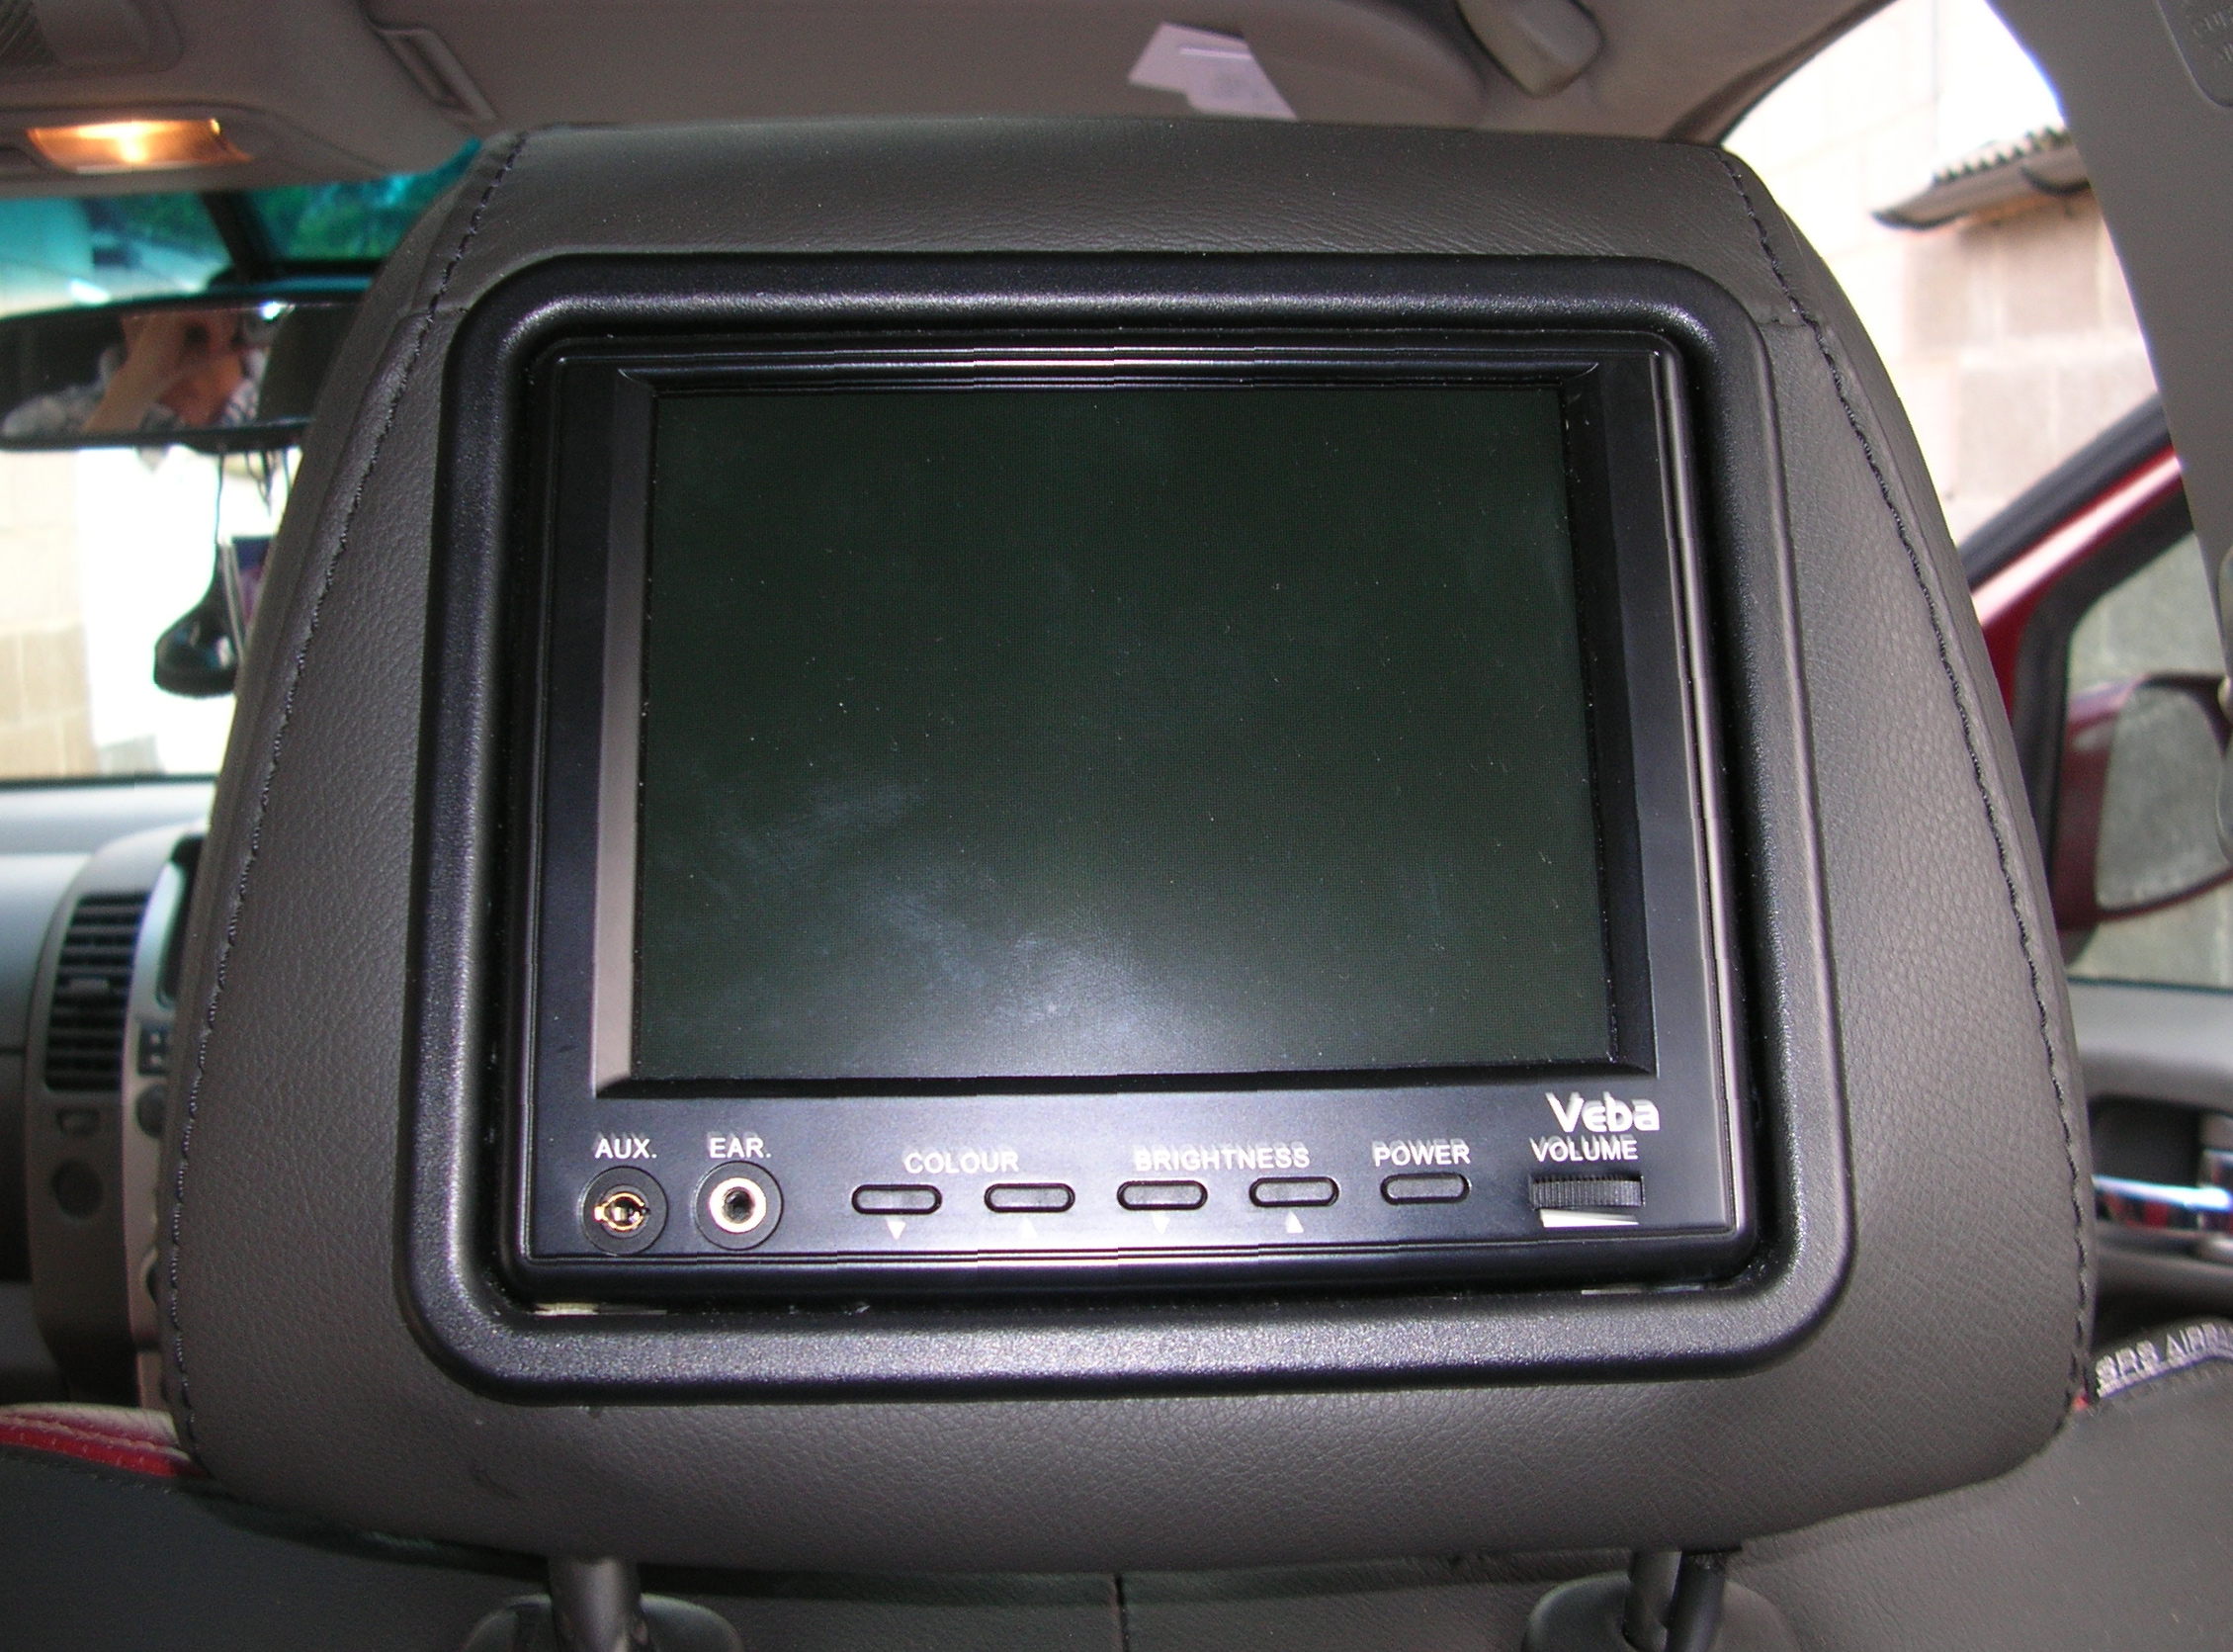 Veba+entertainment+system+fitted+in+headrest